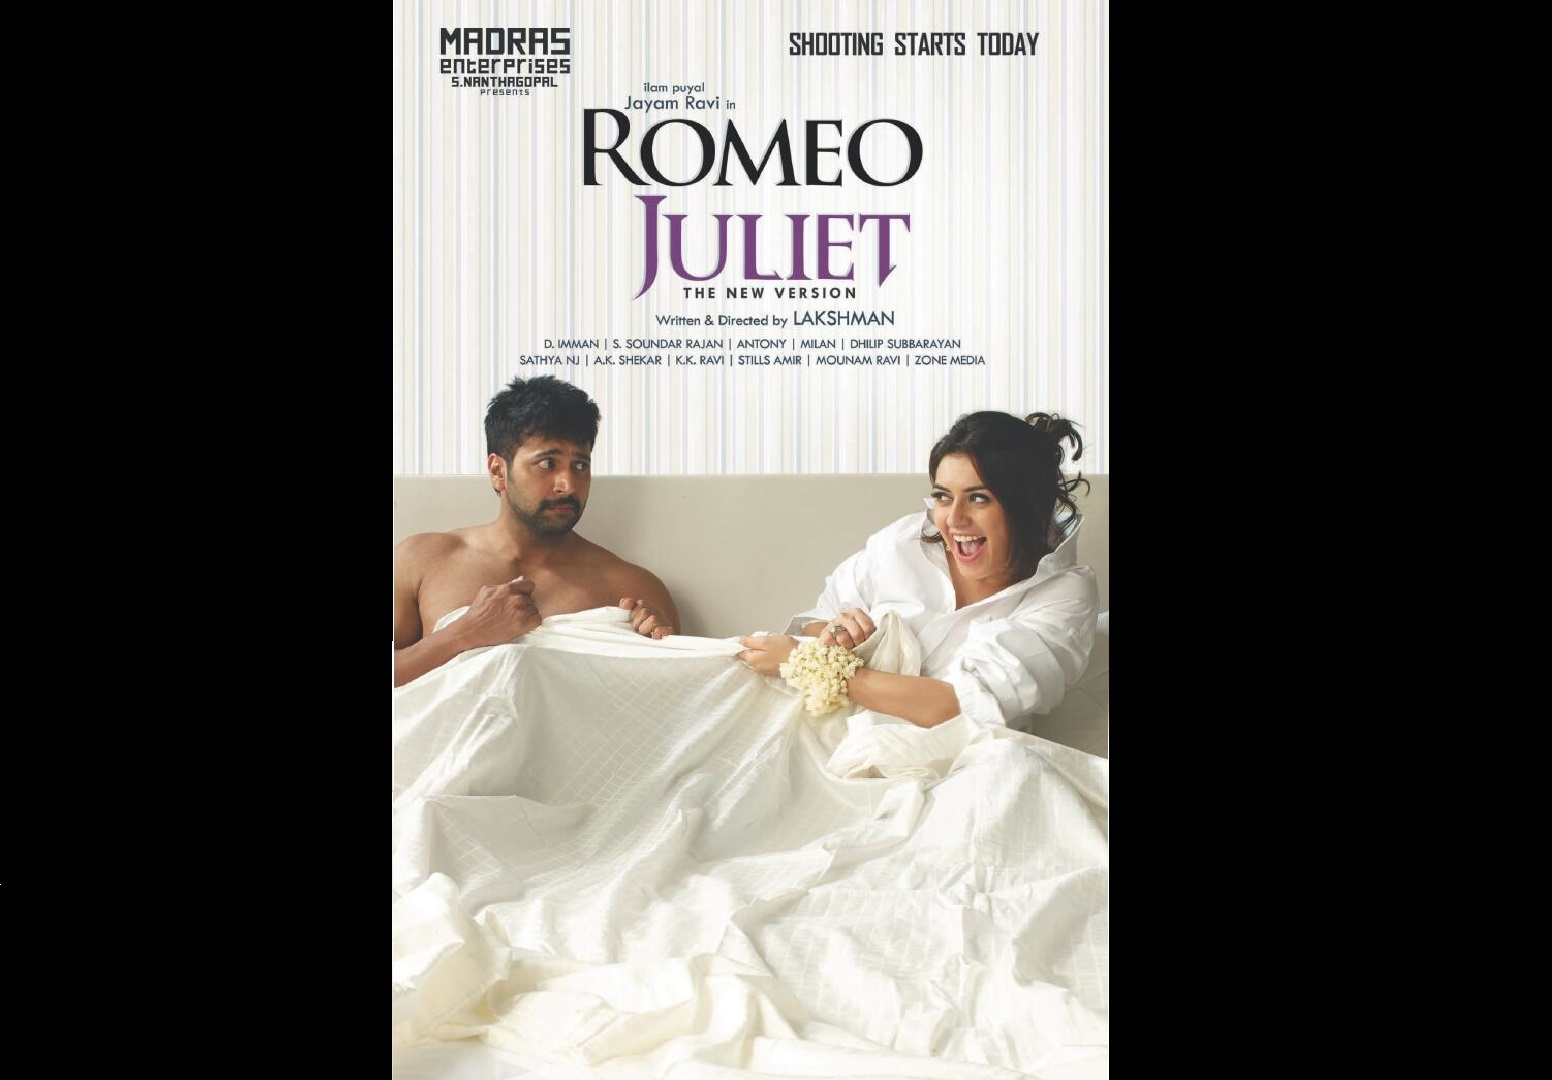 romeo and juliet film codes Great memorable quotes and script exchanges from the romeo and juliet the film went the for never was a story of more woe than that of juliet and her romeo.